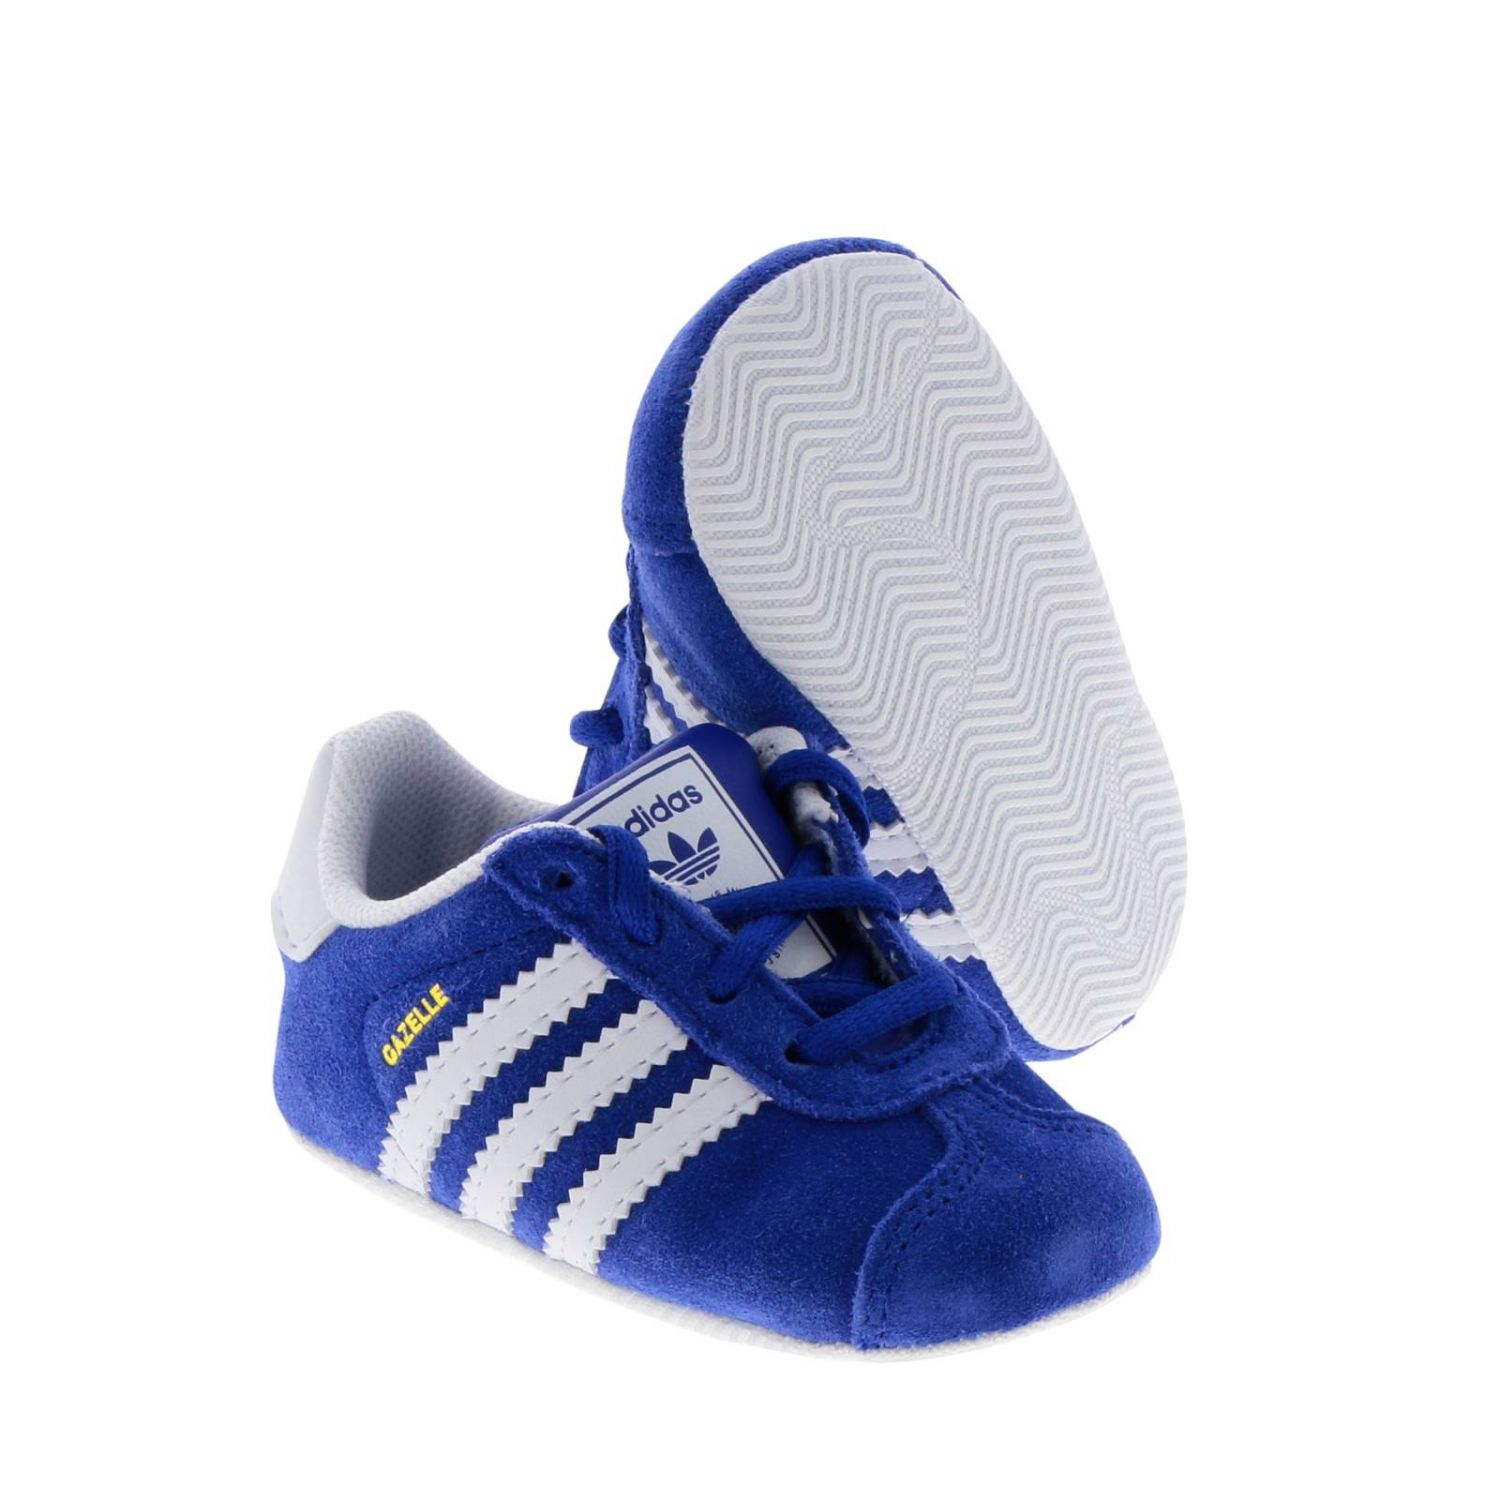 Shoes kids Adidas Originals royal blue 2